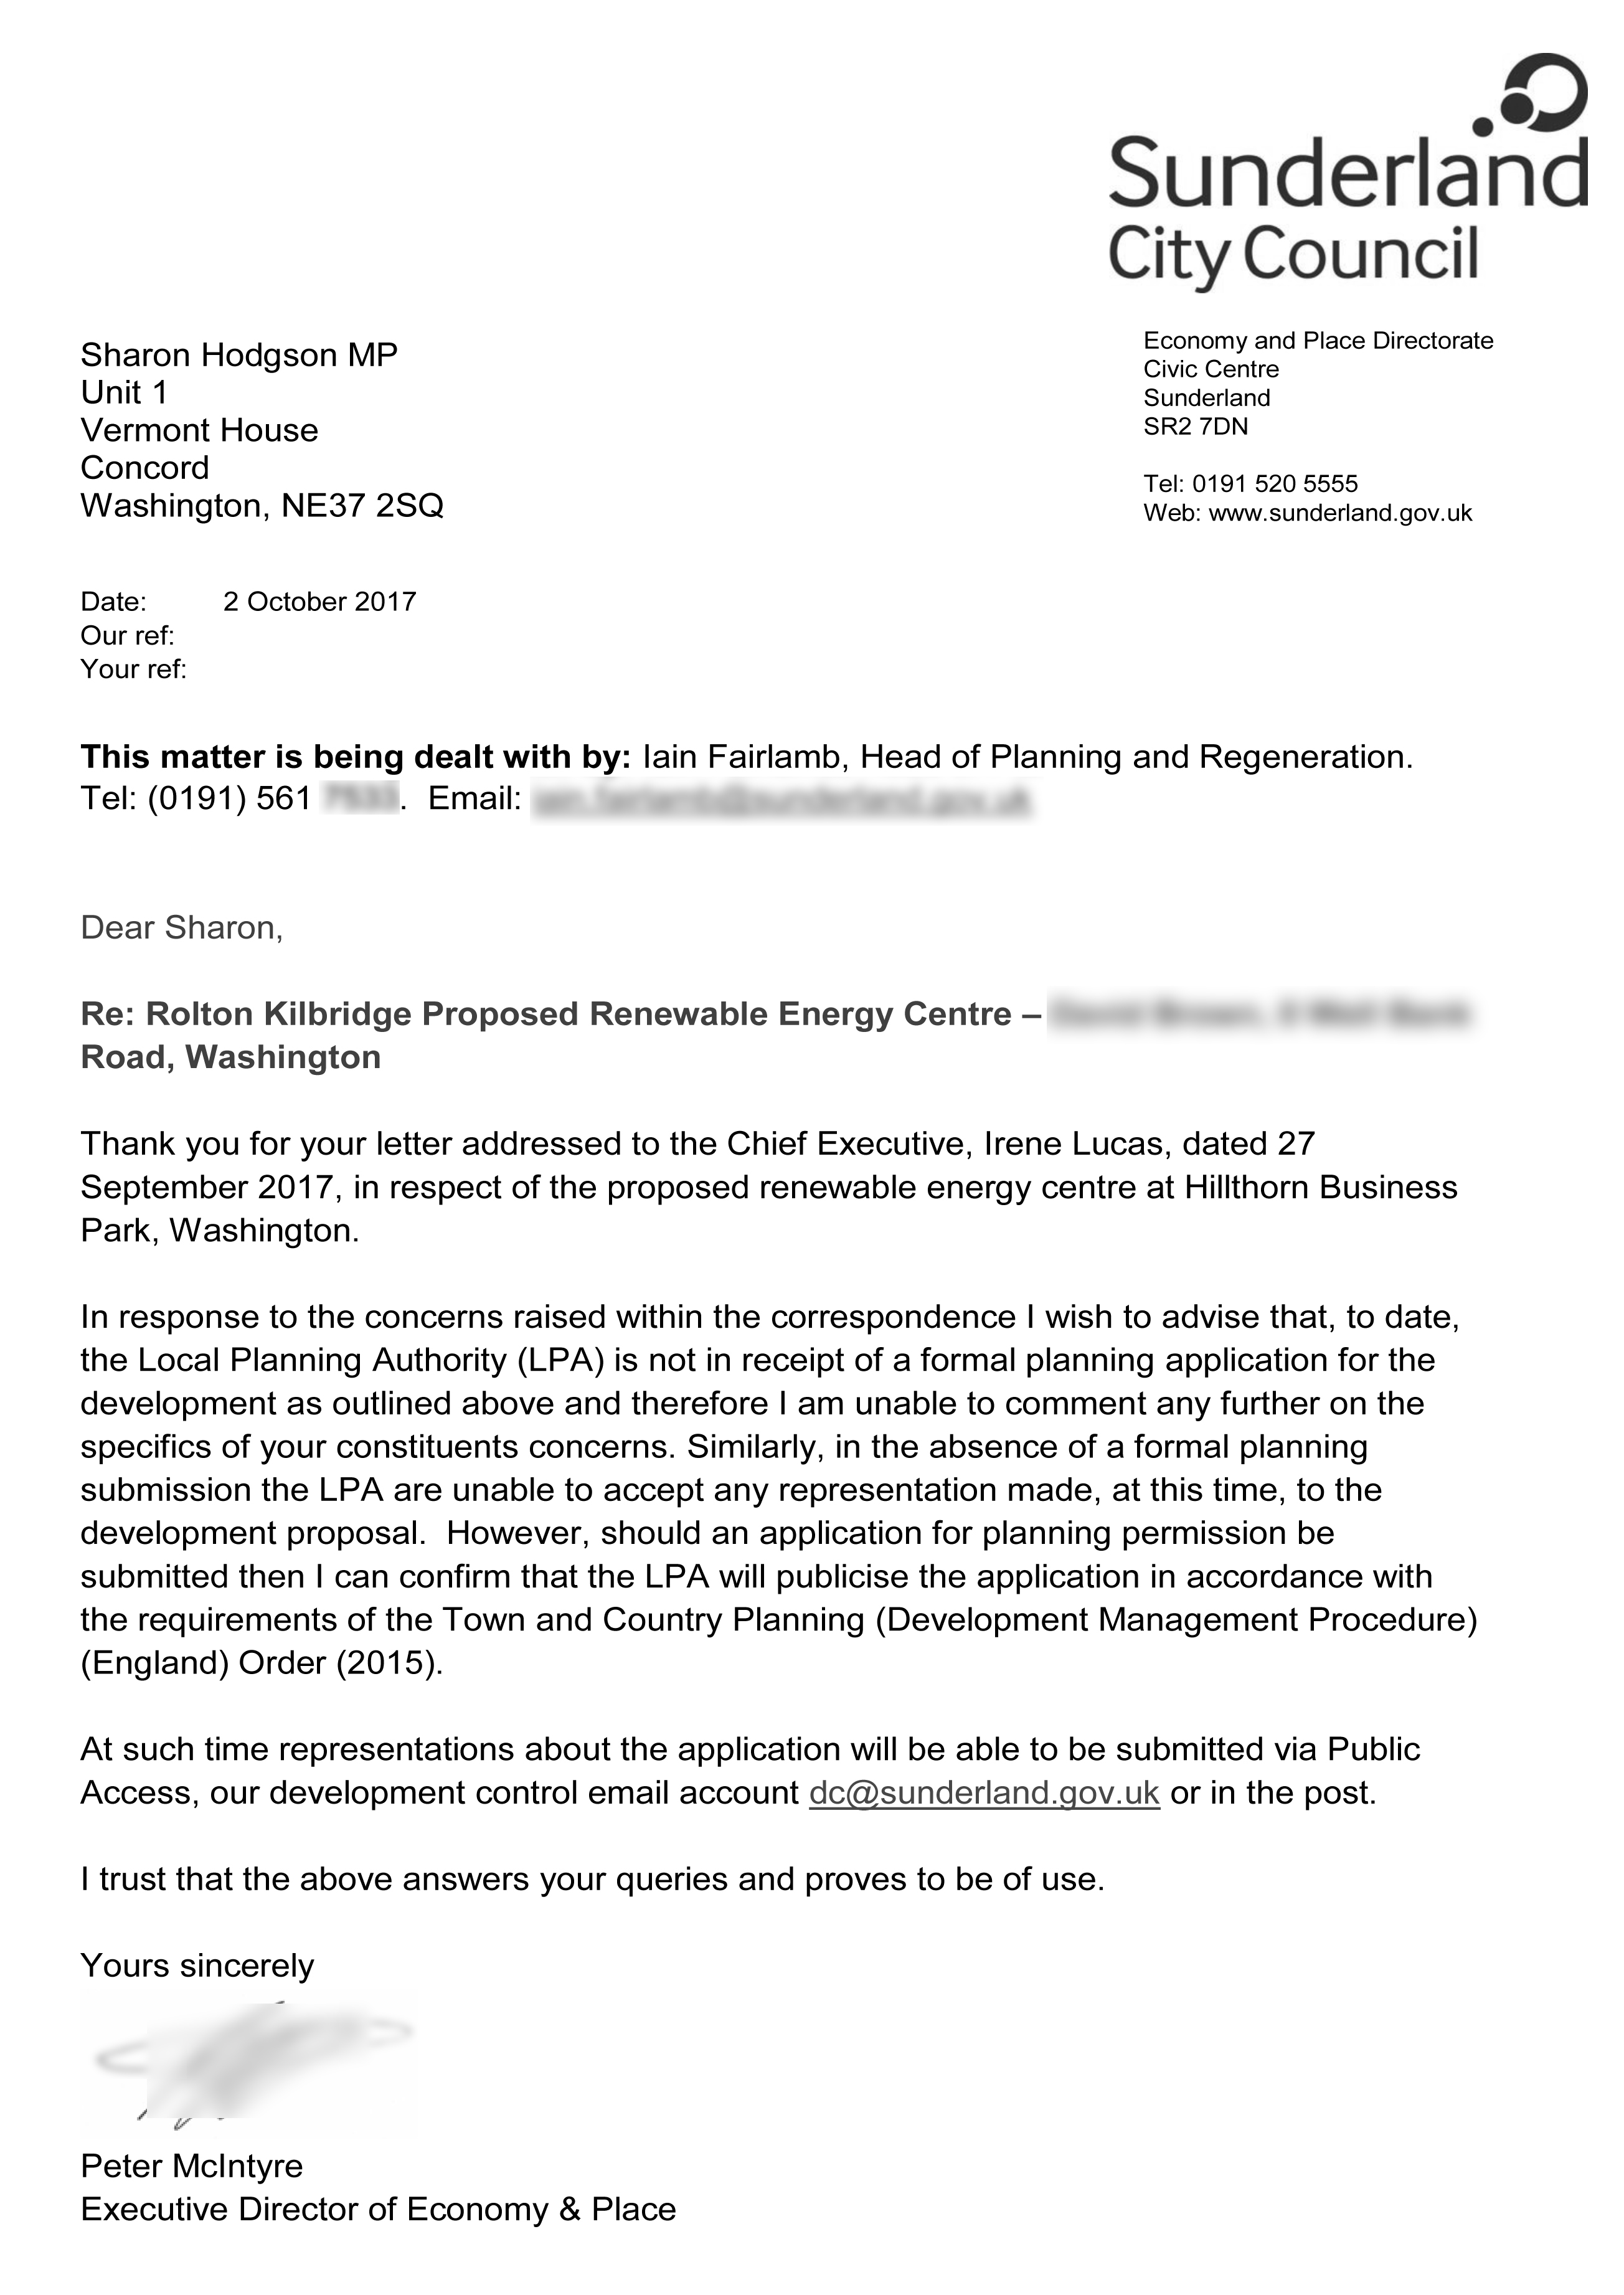 Council_Response_Rolton_Kilbride_proposed_Renewable_Energy_Centre.jpg